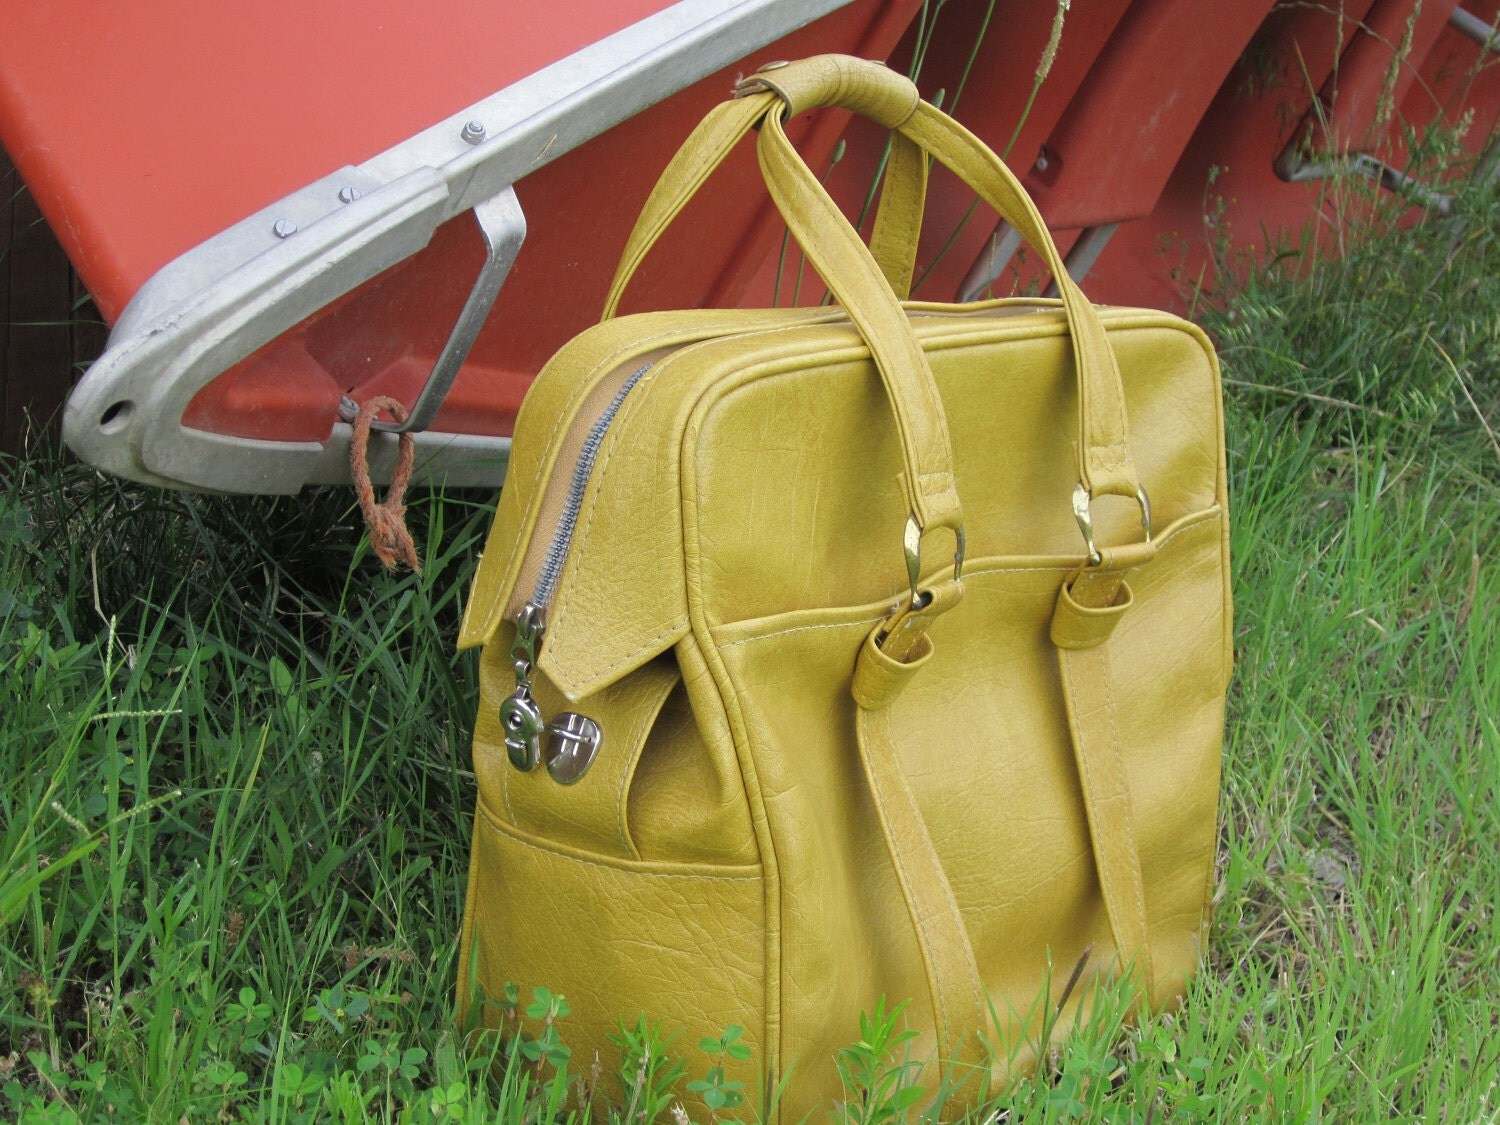 Mustard Yellow Samsonite Messenger / Weekender Travel Bag - 1970's Style